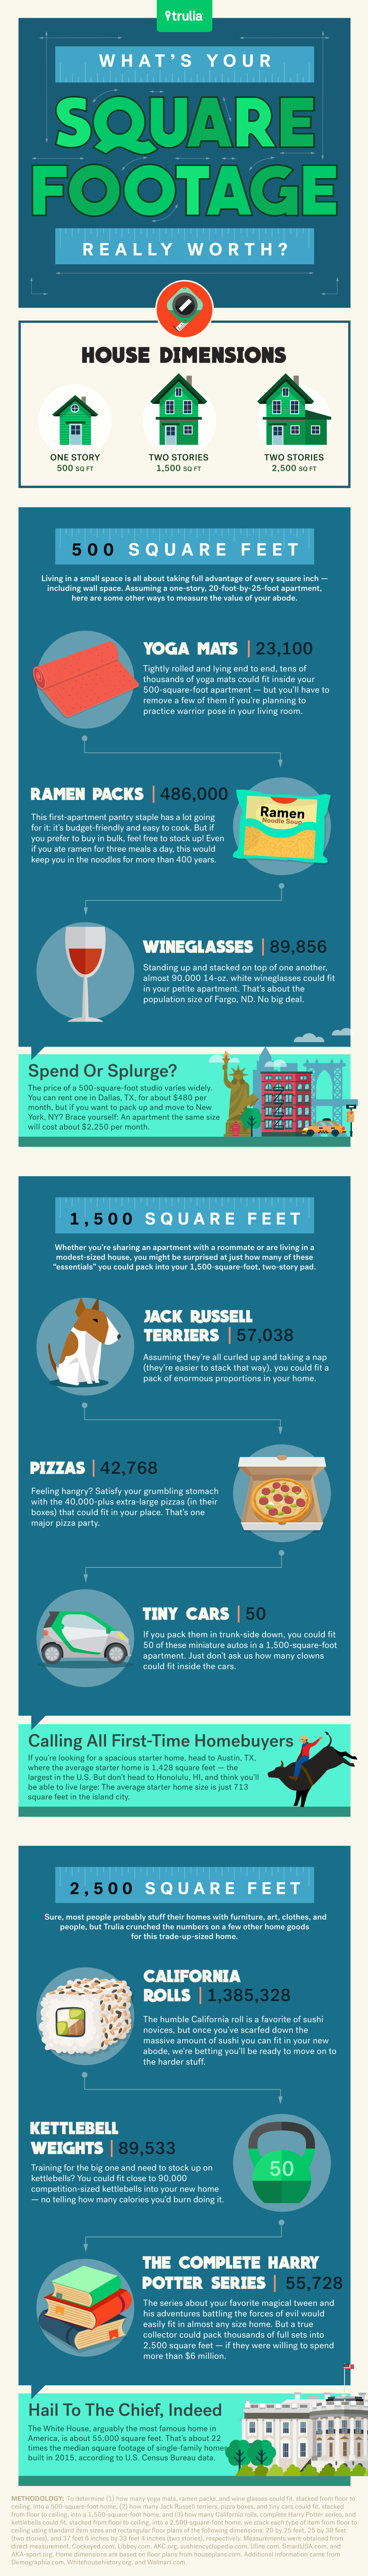 Trulia-Miles-Quillen-Infographic-Whats-Your-Square-Footage